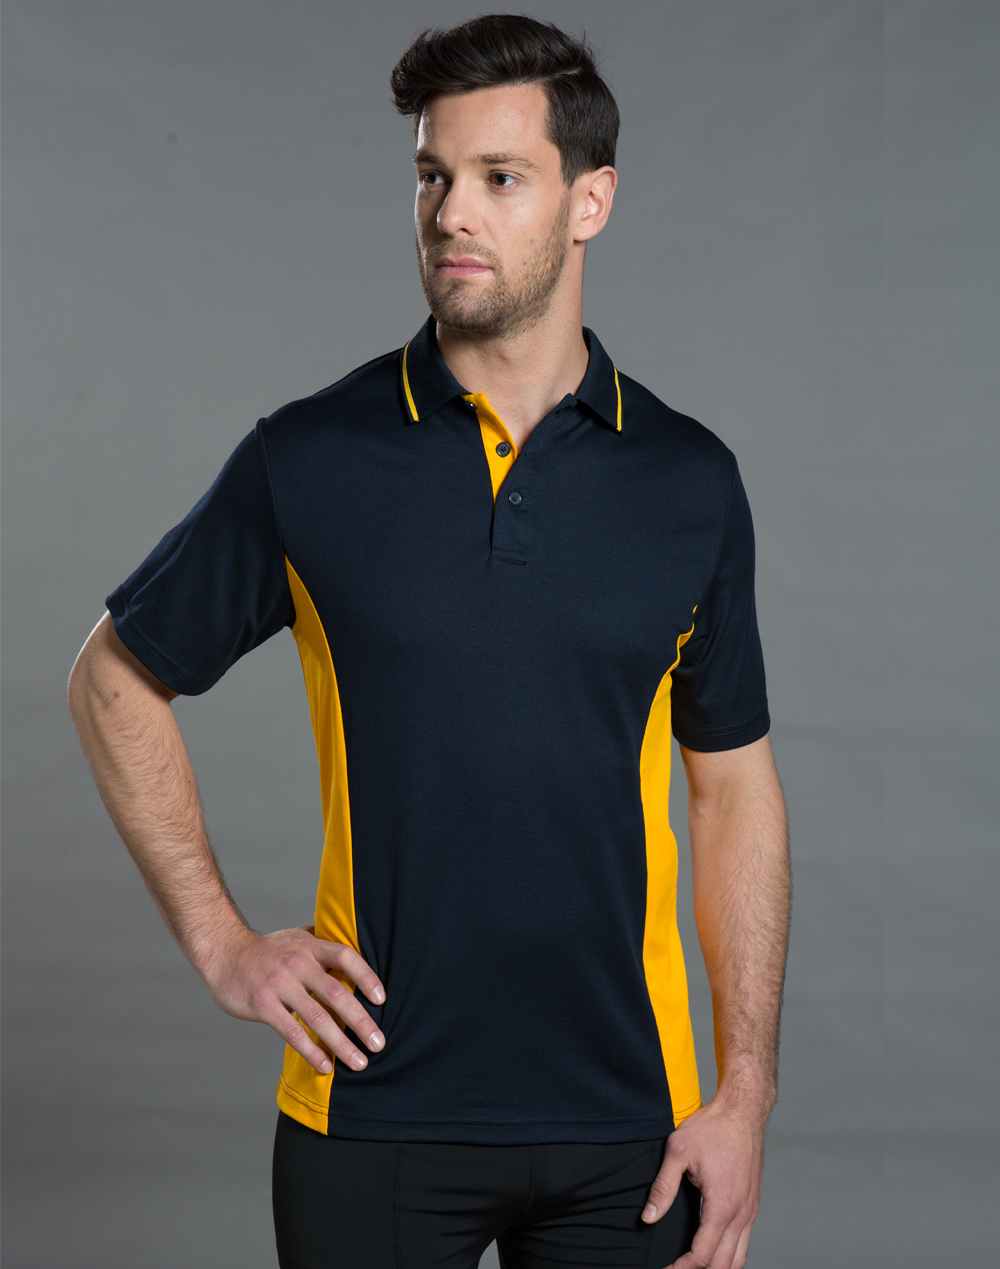 PS73 TEAMMATE POLO Men's